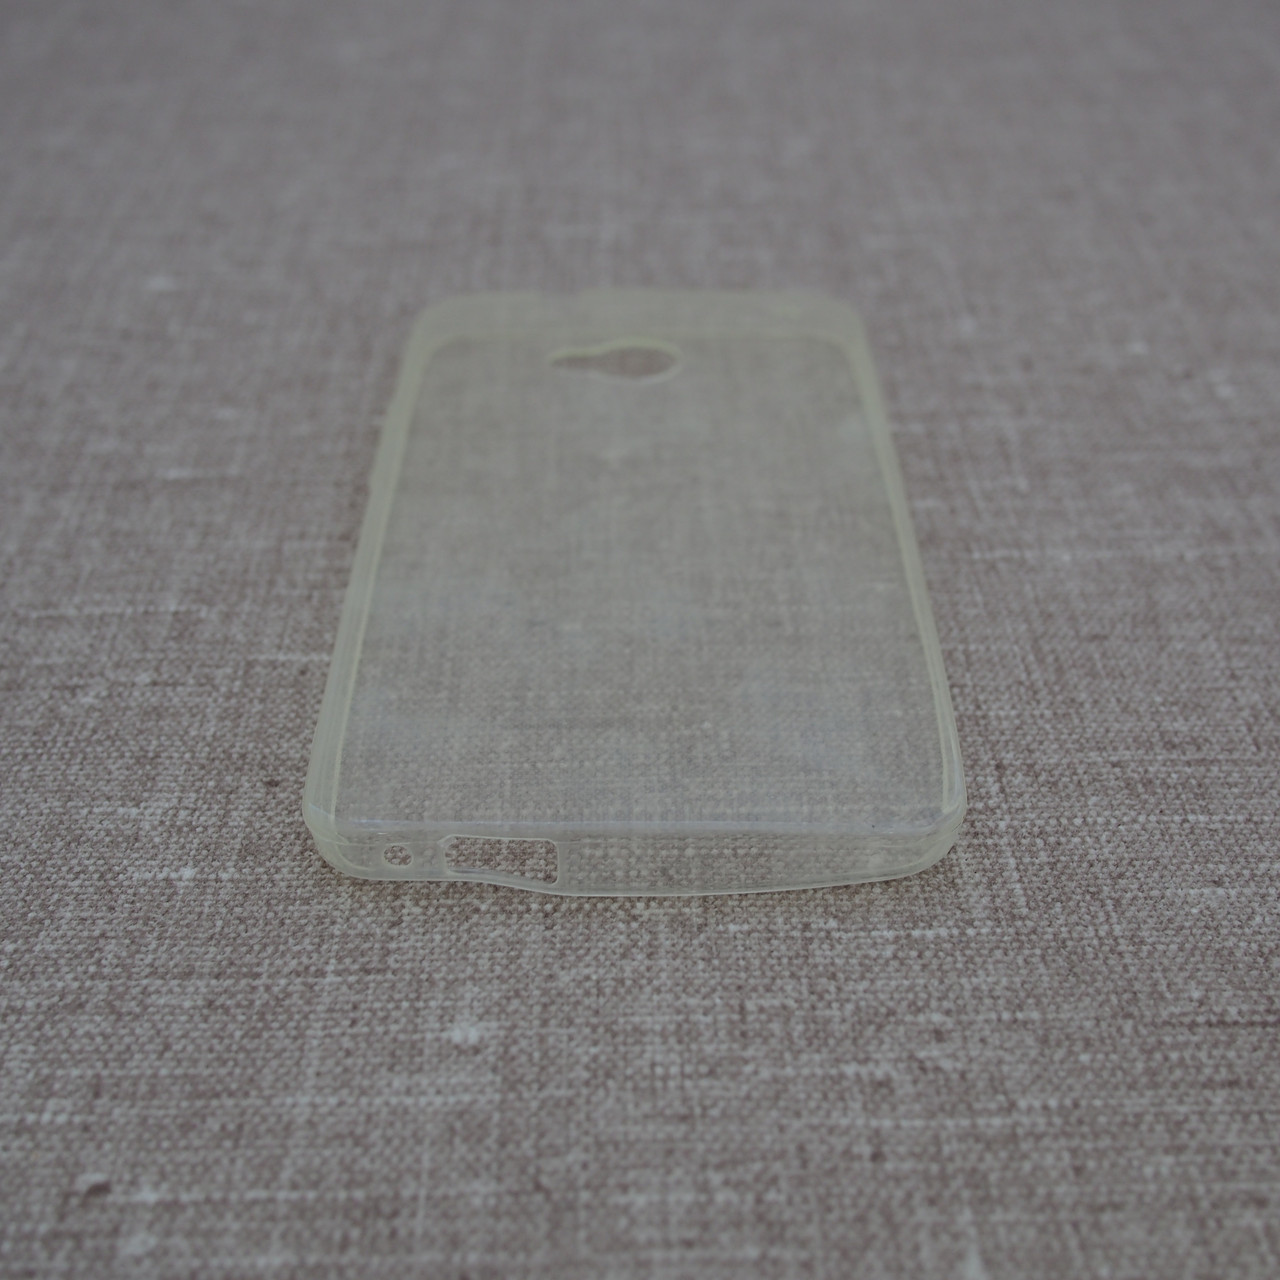 Чехол TPU Ultrathin 0.33mm HTC One M7 soft-clear Для телефона